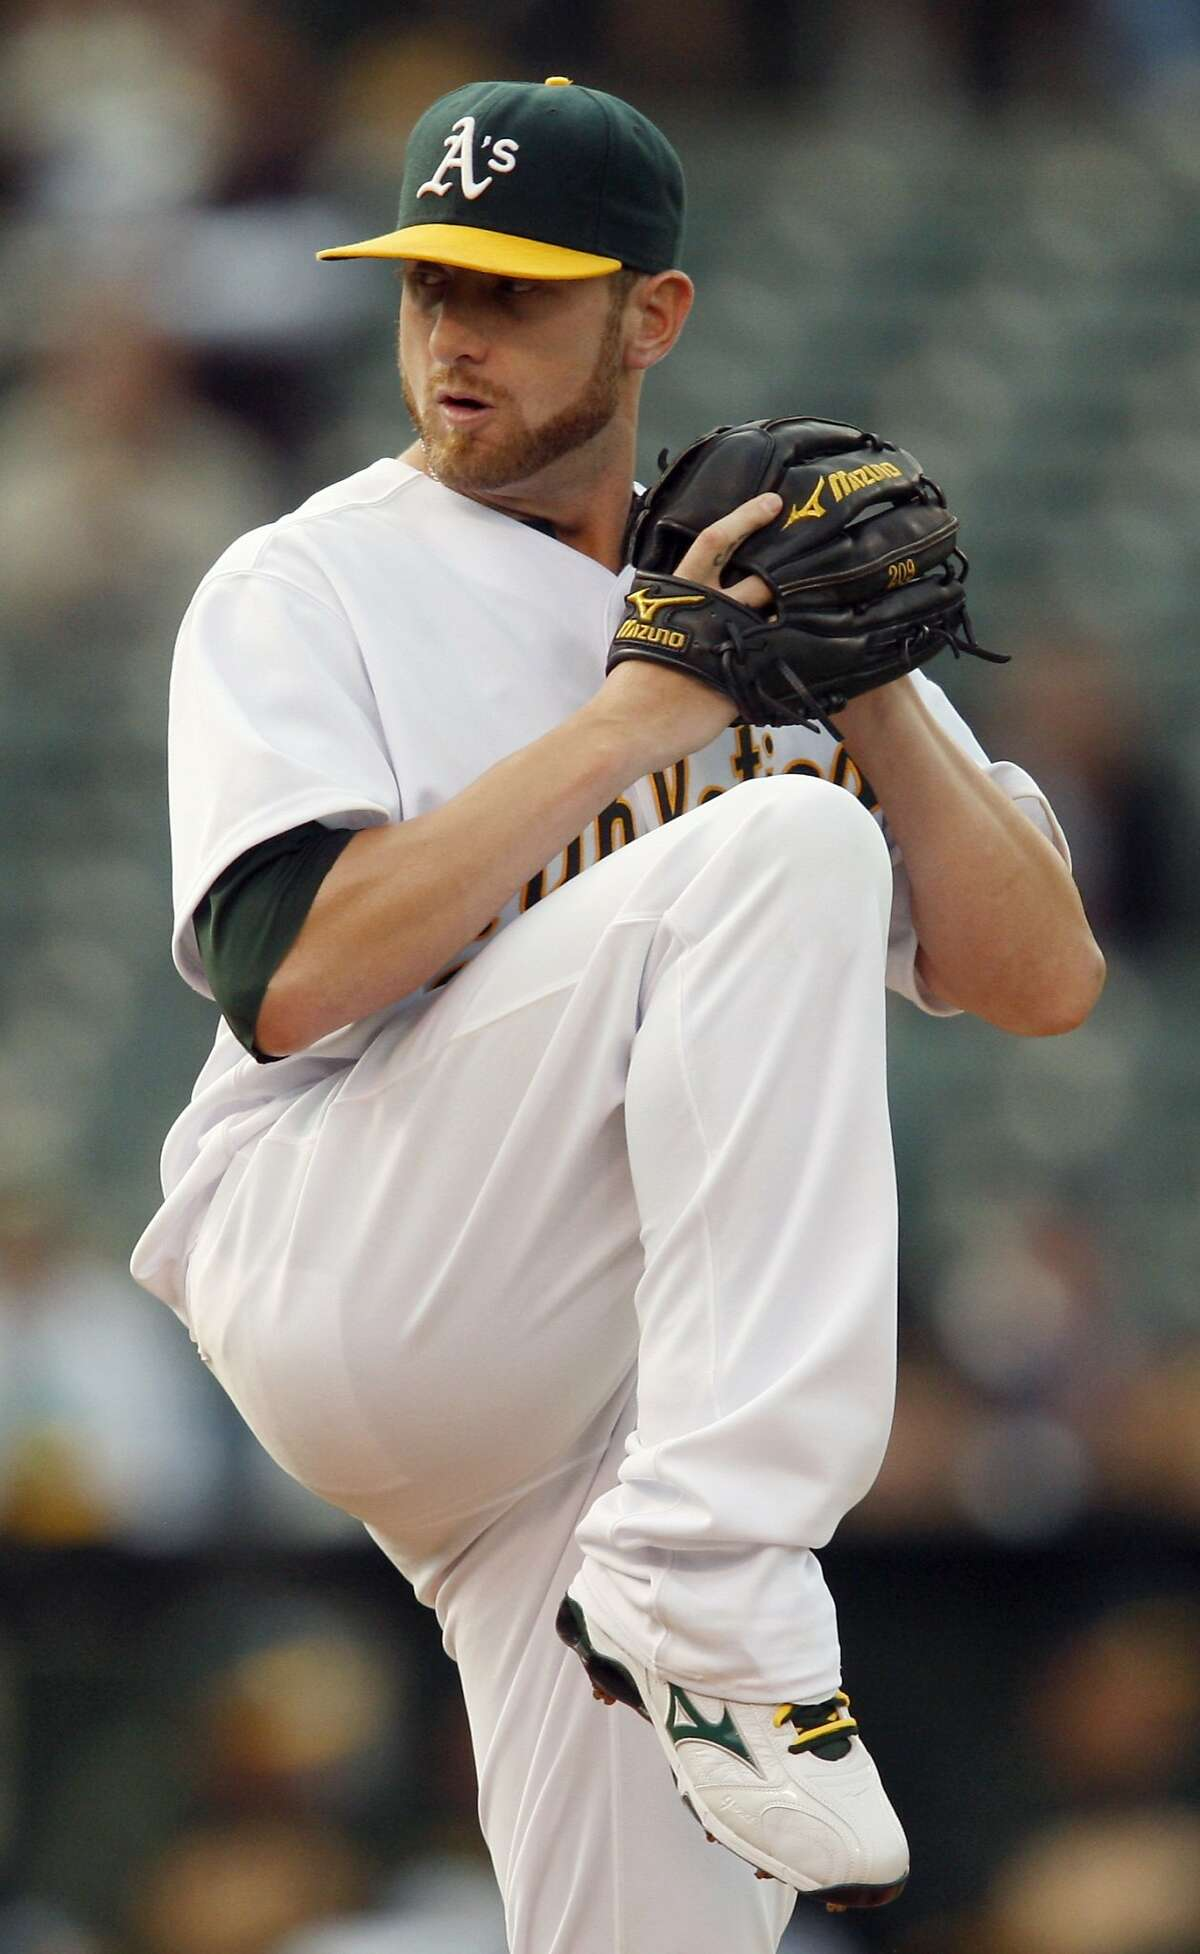 Oakland Athletics pitcher Dallas Braden works against the Cincinnati Reds during the first inning of a baseball game Tuesday, June 22, 2010, in Oakland, Calif.